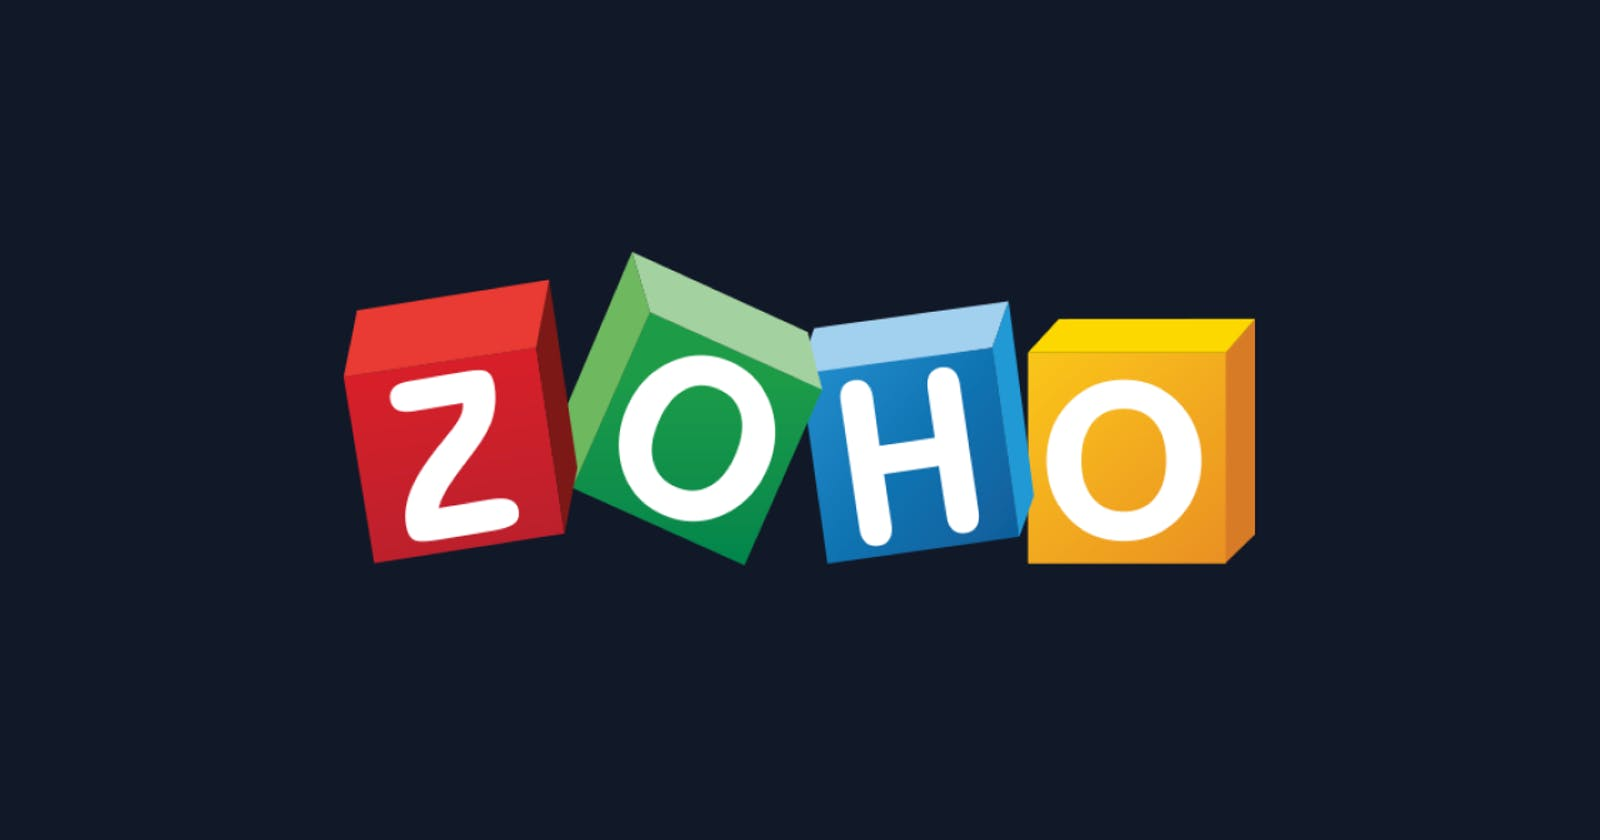 Create custom emails with your Netlify domain and Zoho